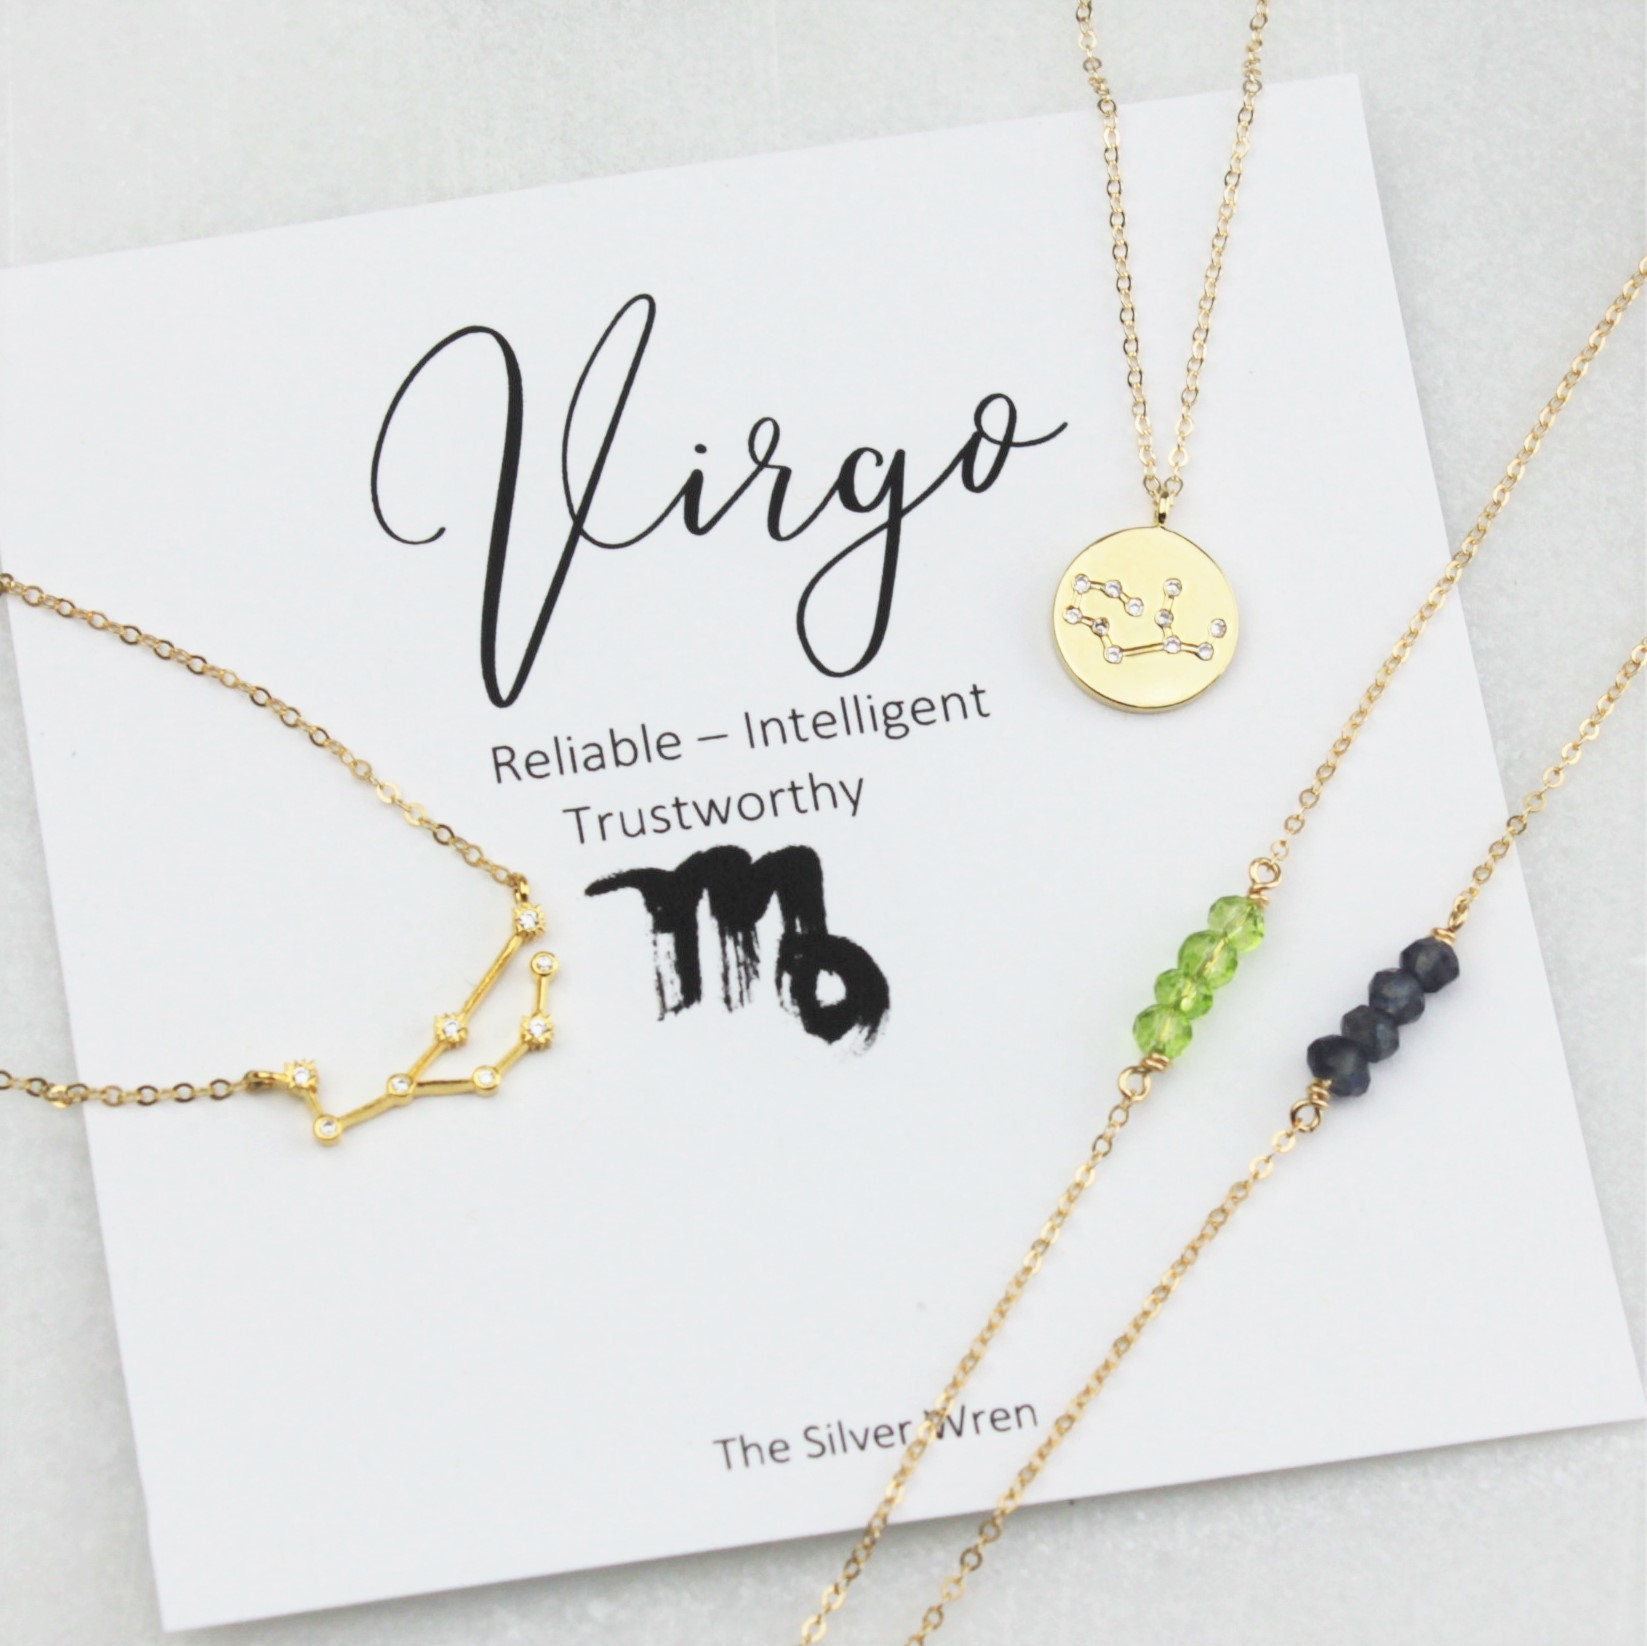 pin gift zodiac virgo astronomy jewelry necklace